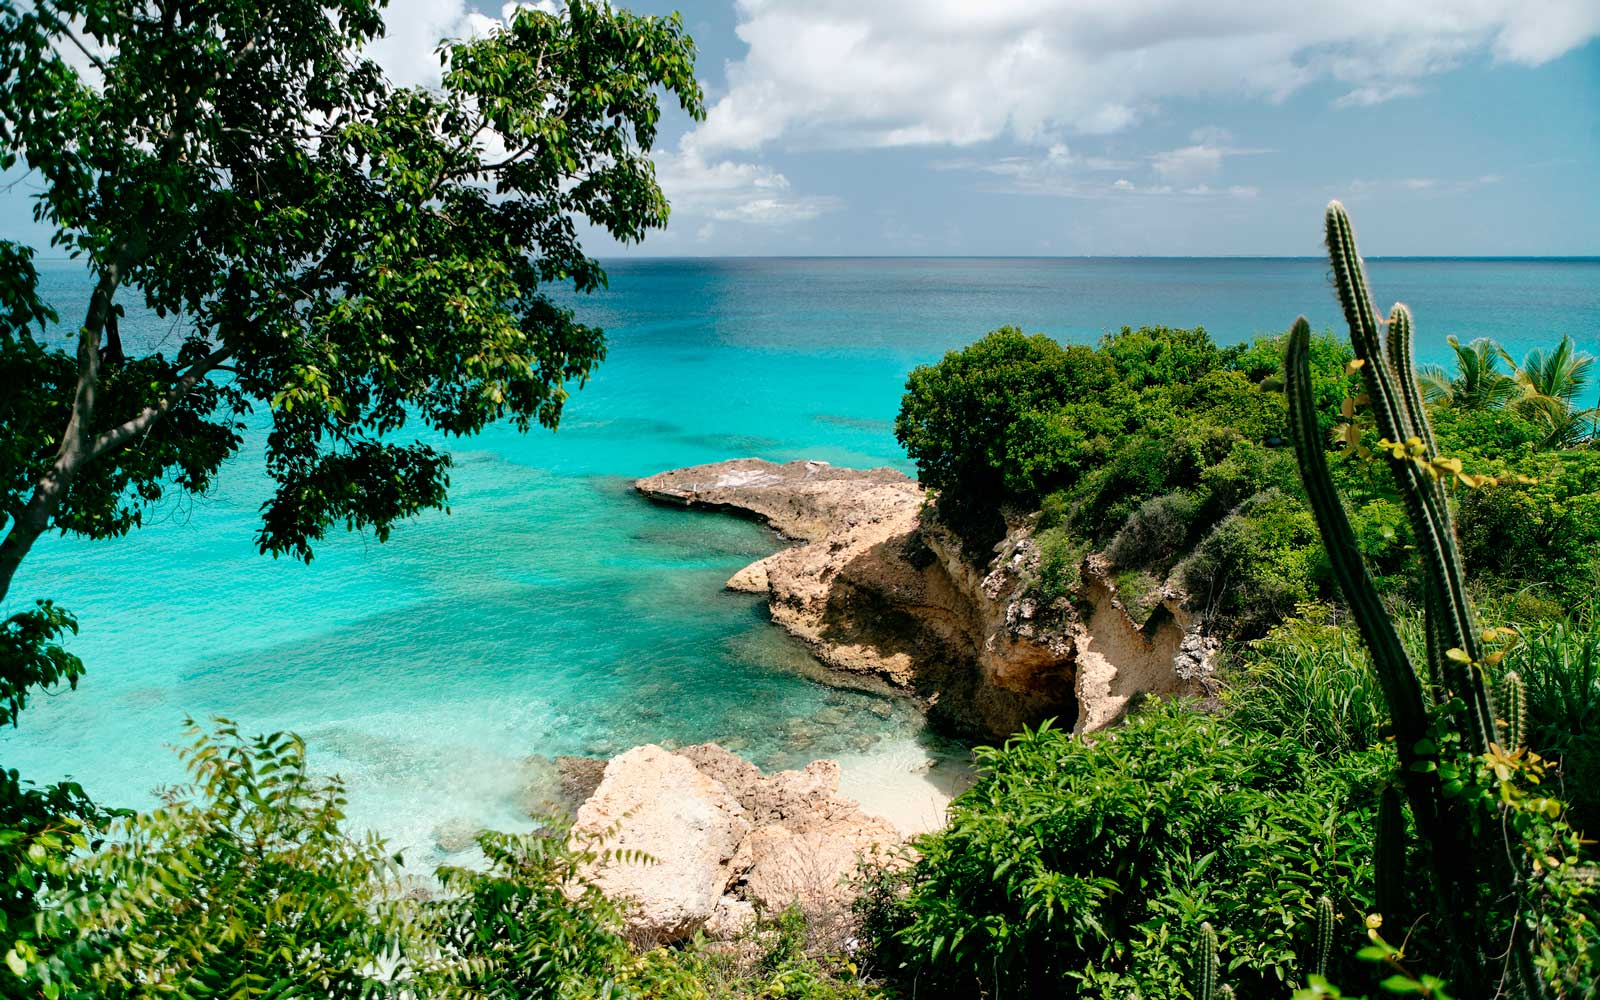 Why This is the Best Island in the Caribbean | Travel + Leisure